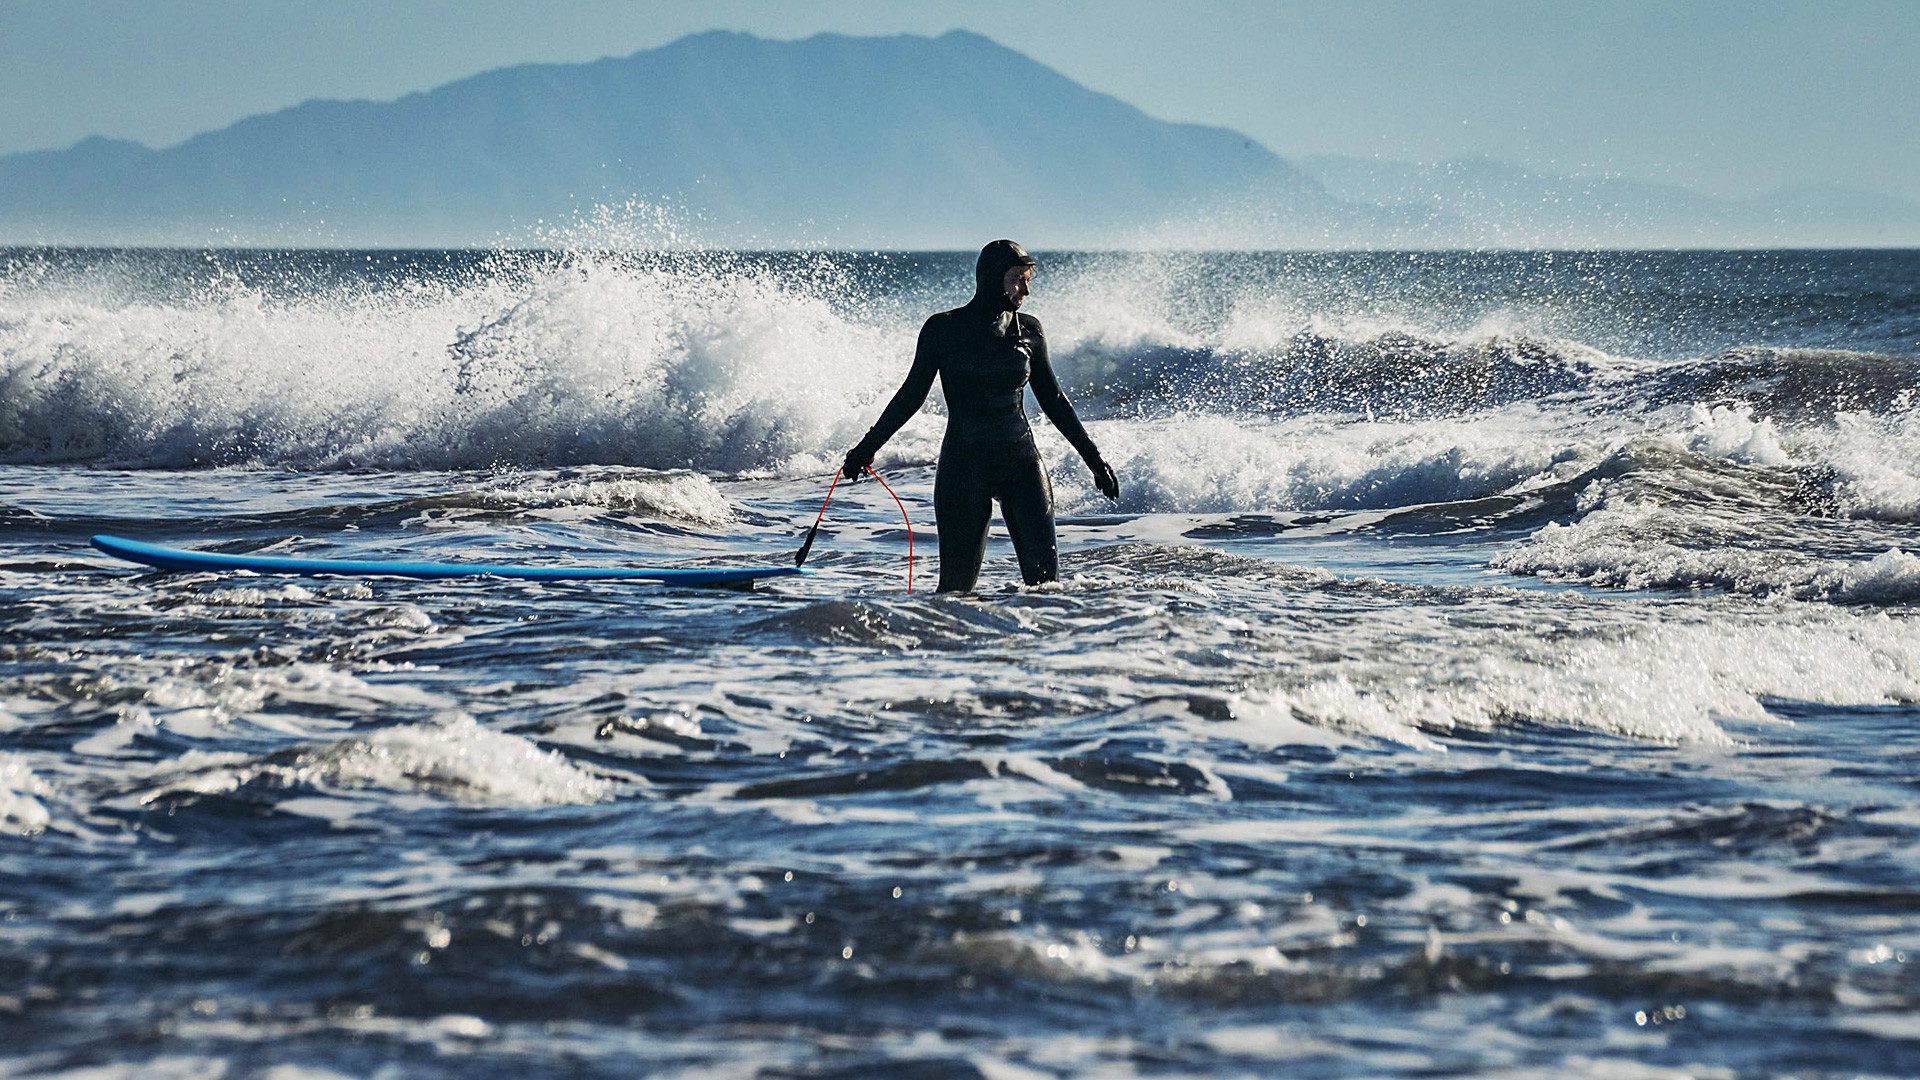 Gone with the waves: Surfing in Kamchatka - Russia Beyond